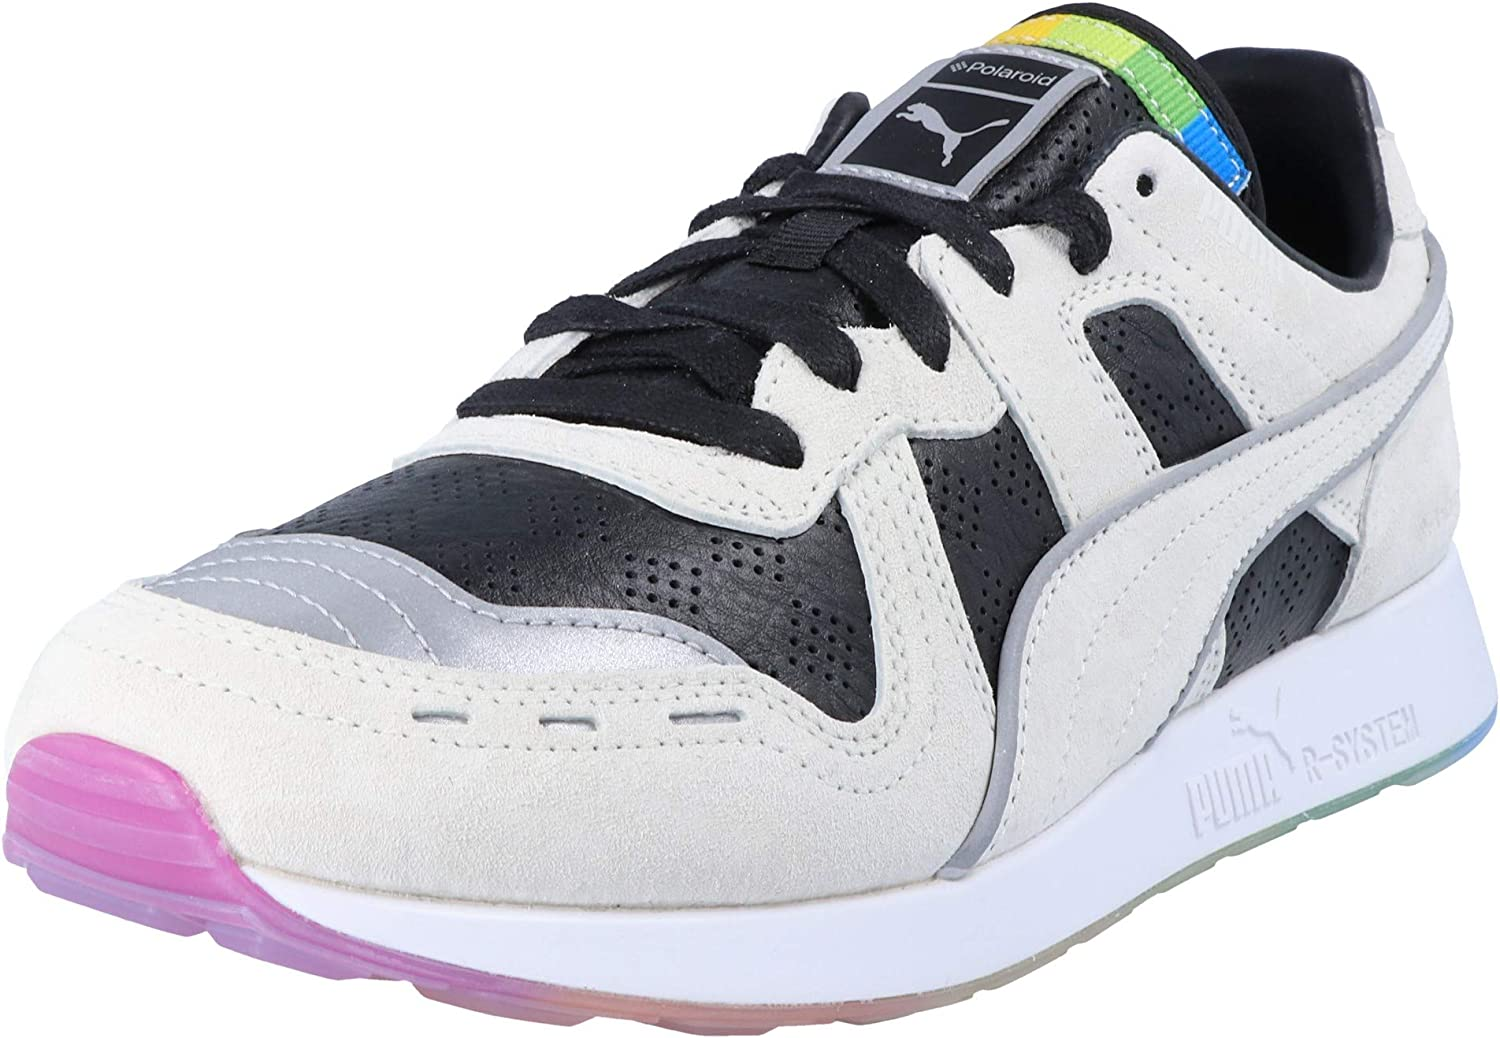 Puma RS 100 x Polaroid Unisex Sneakers Grey